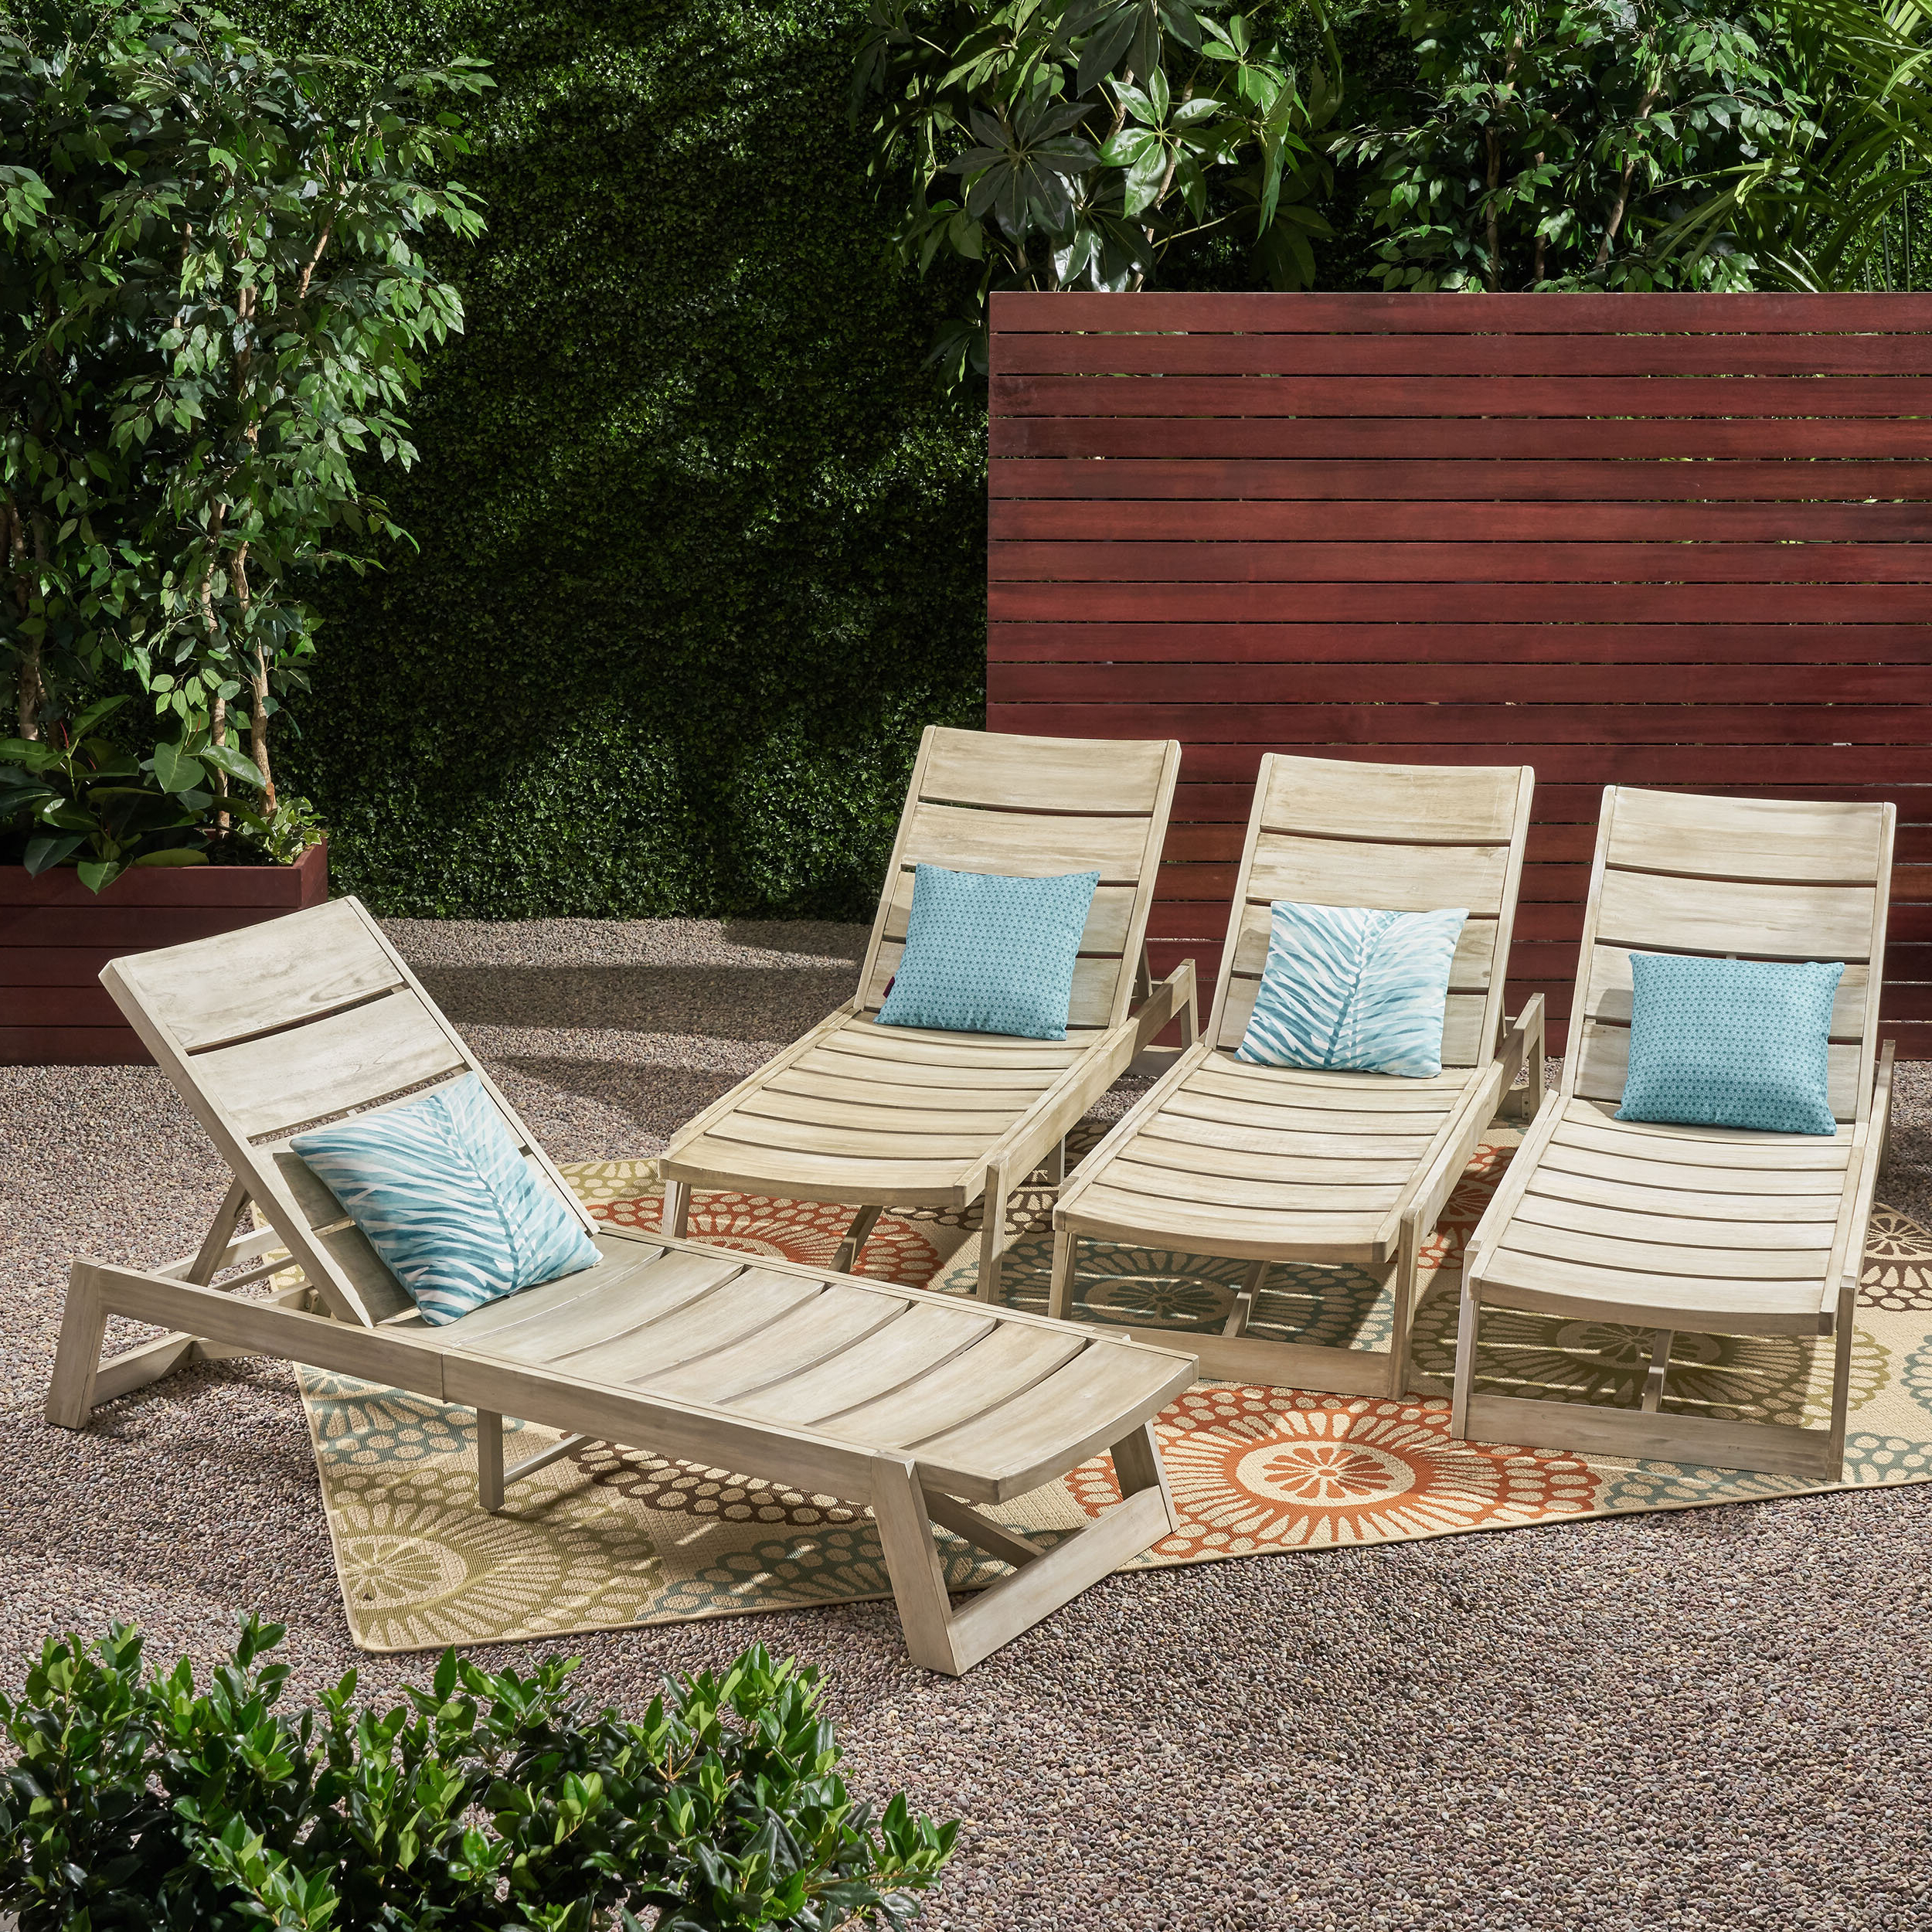 Well Known Outdoor Rustic Acacia Wood Chaise Lounges With Wicker Seat For Nowakowski Acacia Wood Reclining Chaise Lounge (Gallery 19 of 25)